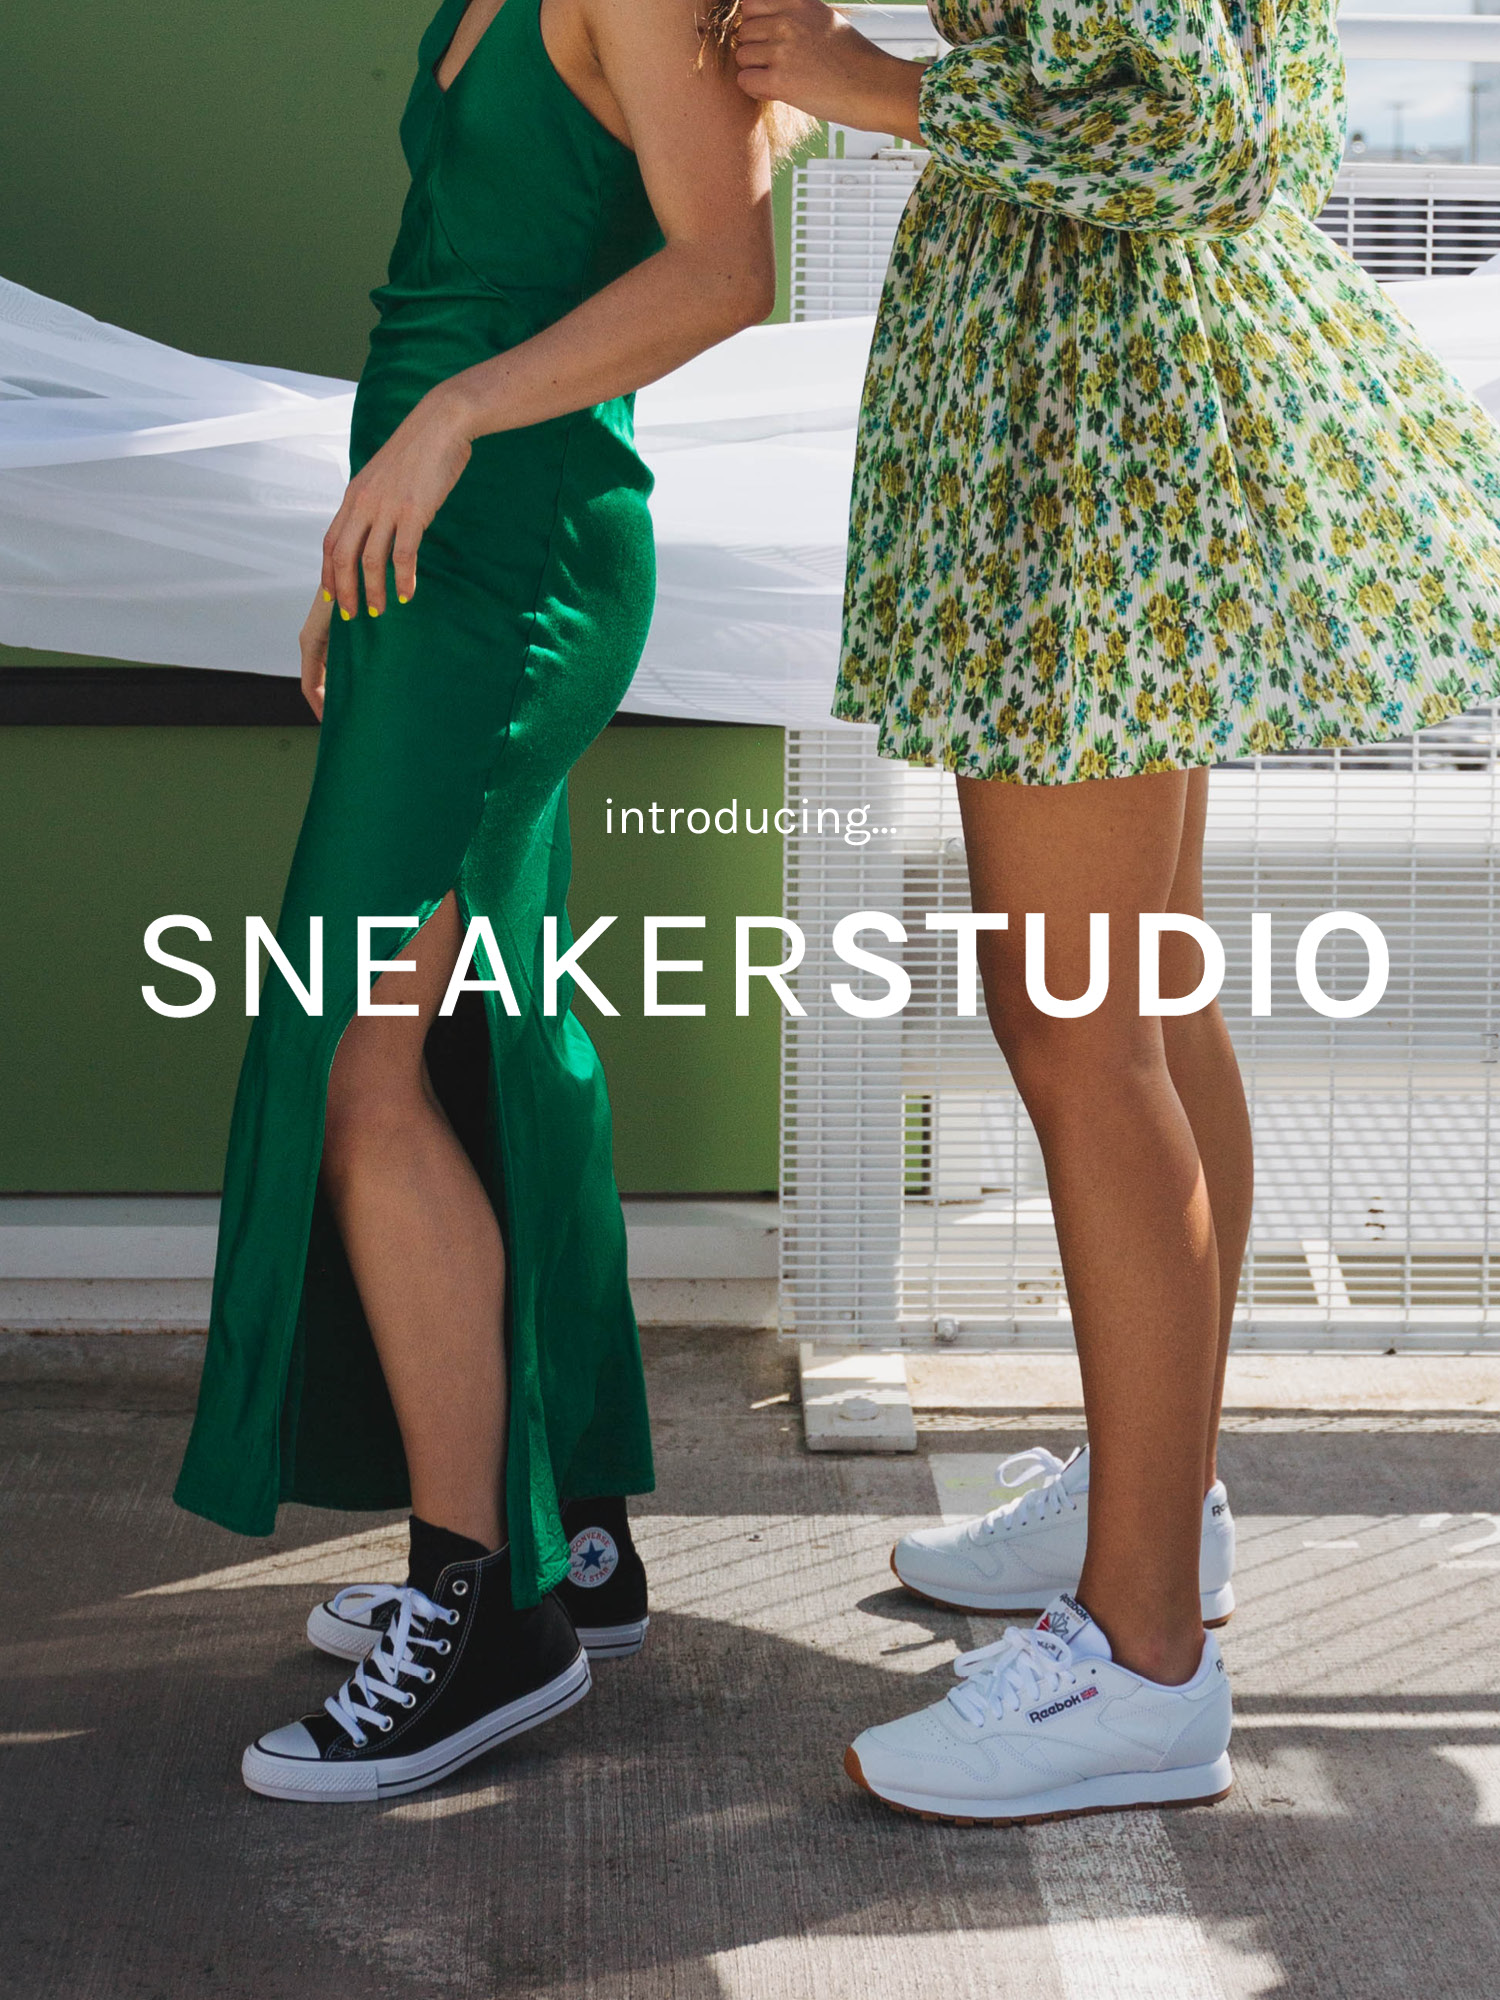 Introducing Sneaker Studio